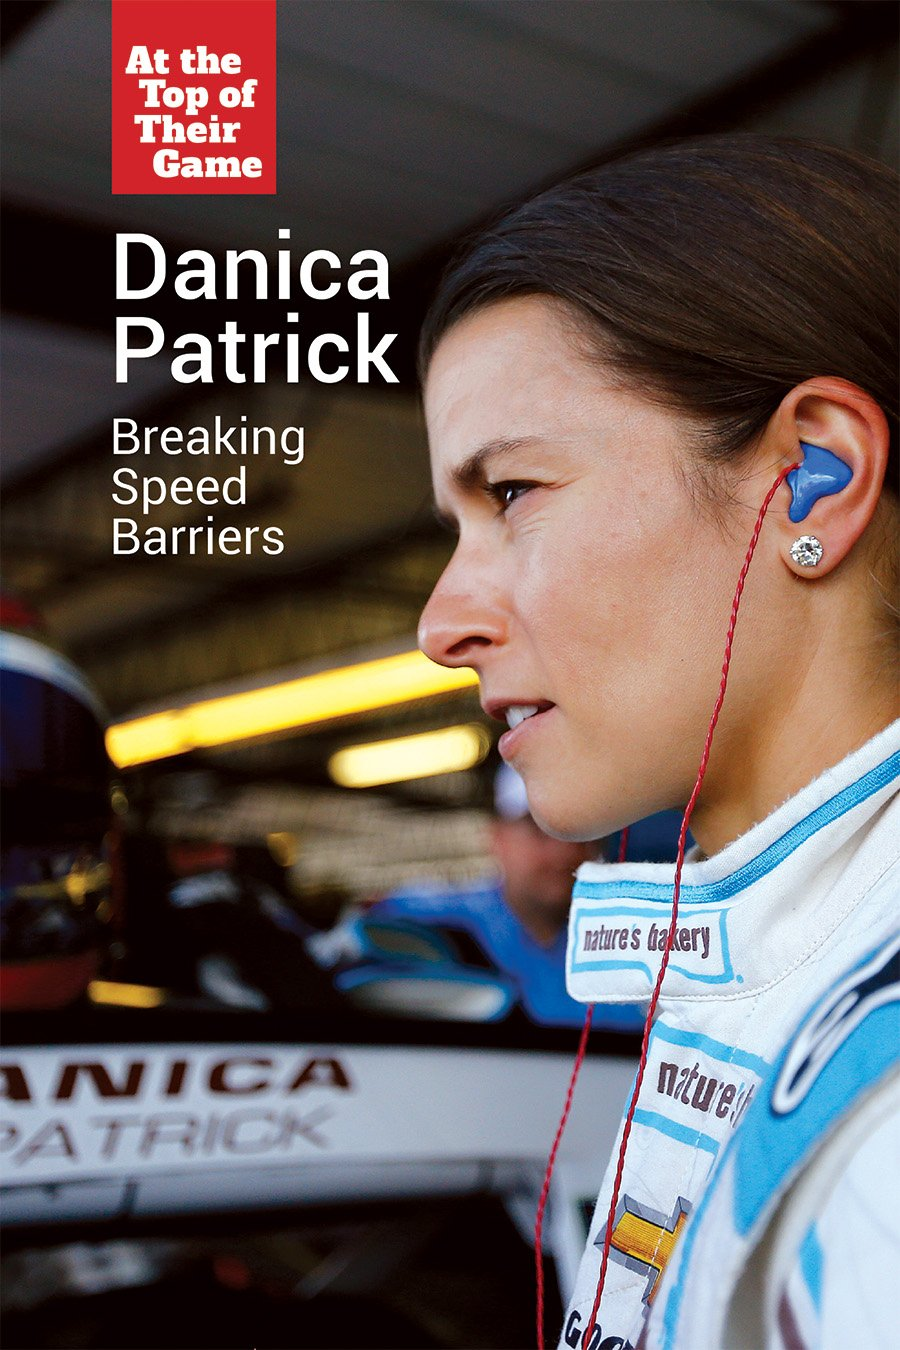 Danica Patrick: Breaking Speed Barriers (At the Top of Their Game)